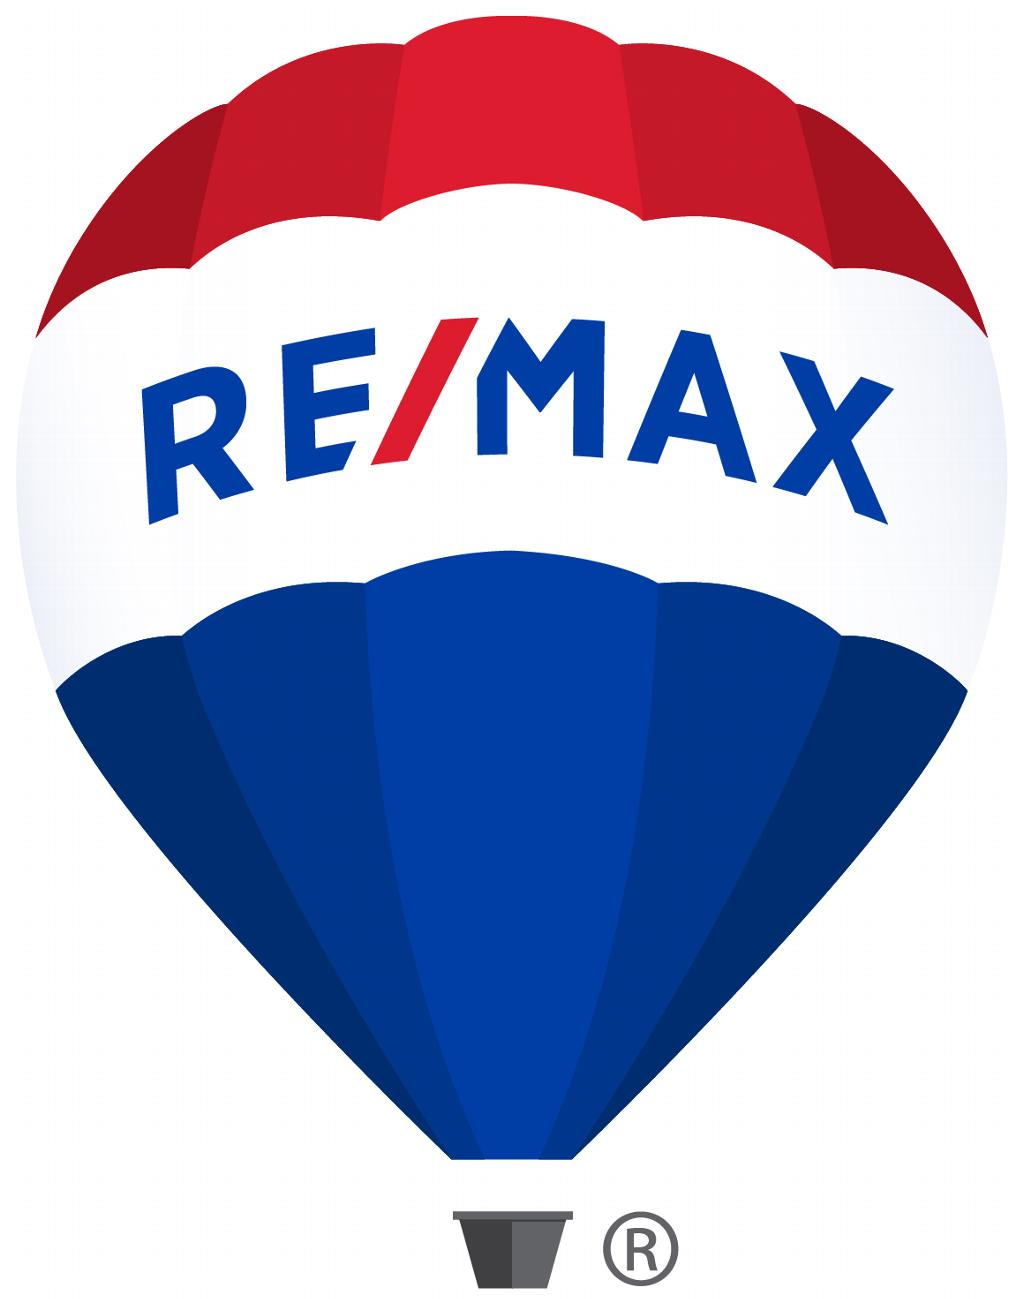 REMAX_mastrBalloon_RGB_R_low.jpg